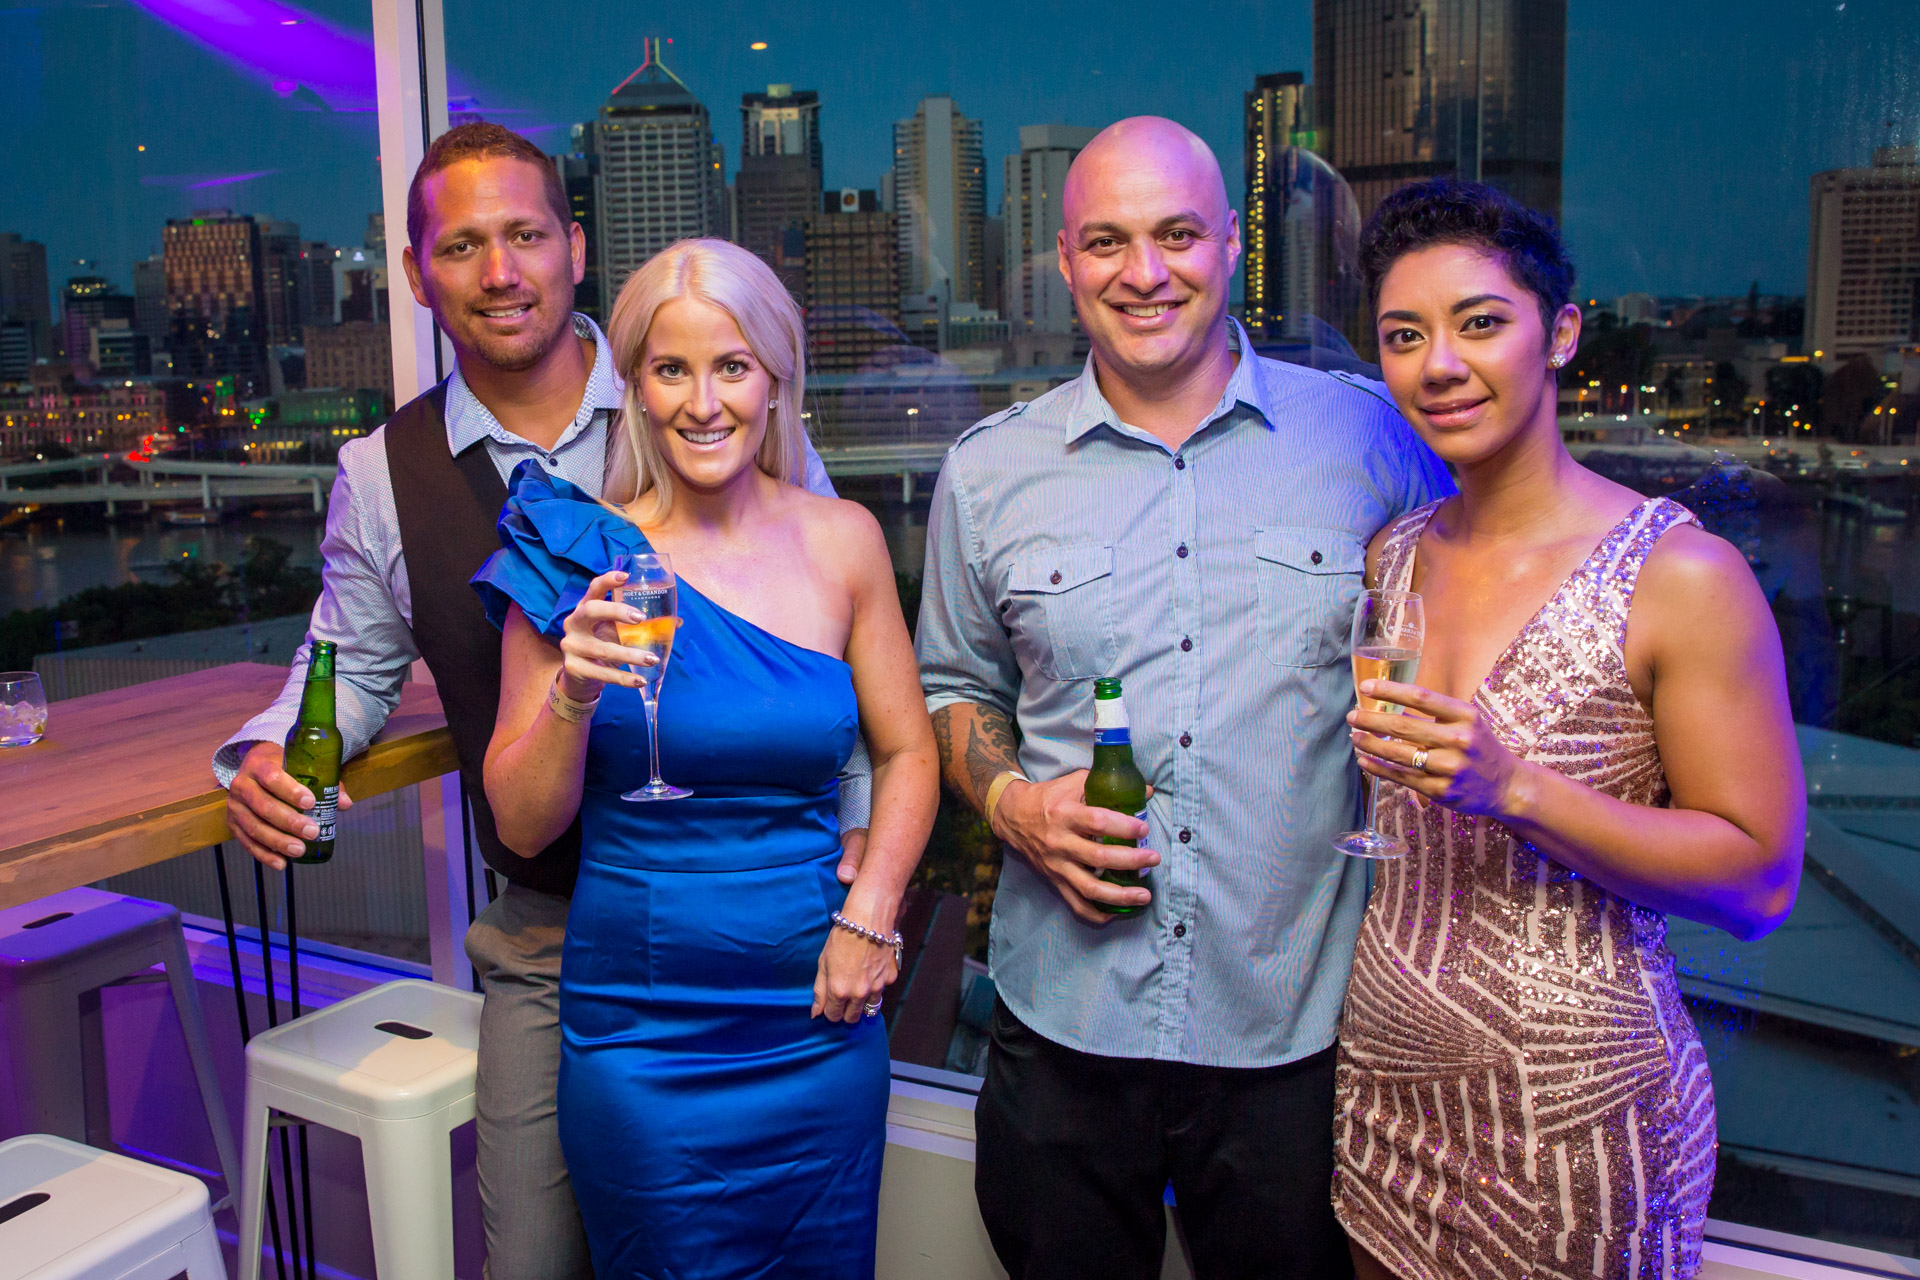 Profesisonal Event Photographer, Rydges South Bank Brisbane Event Photography2.jpg